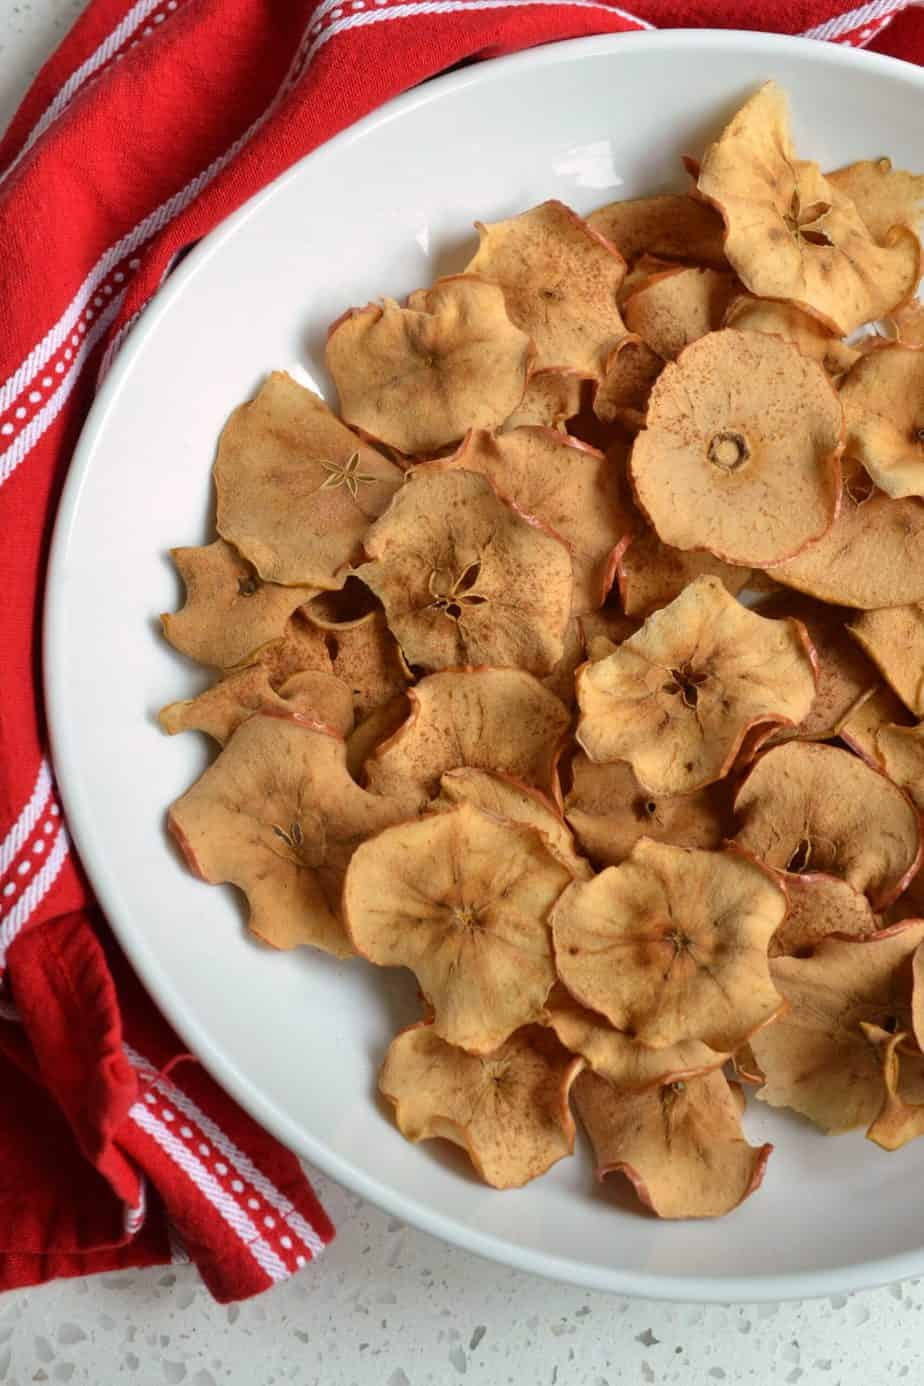 An easy healthy baked Apple Chip recipe that takes just minutes to prep and tastes delicious.